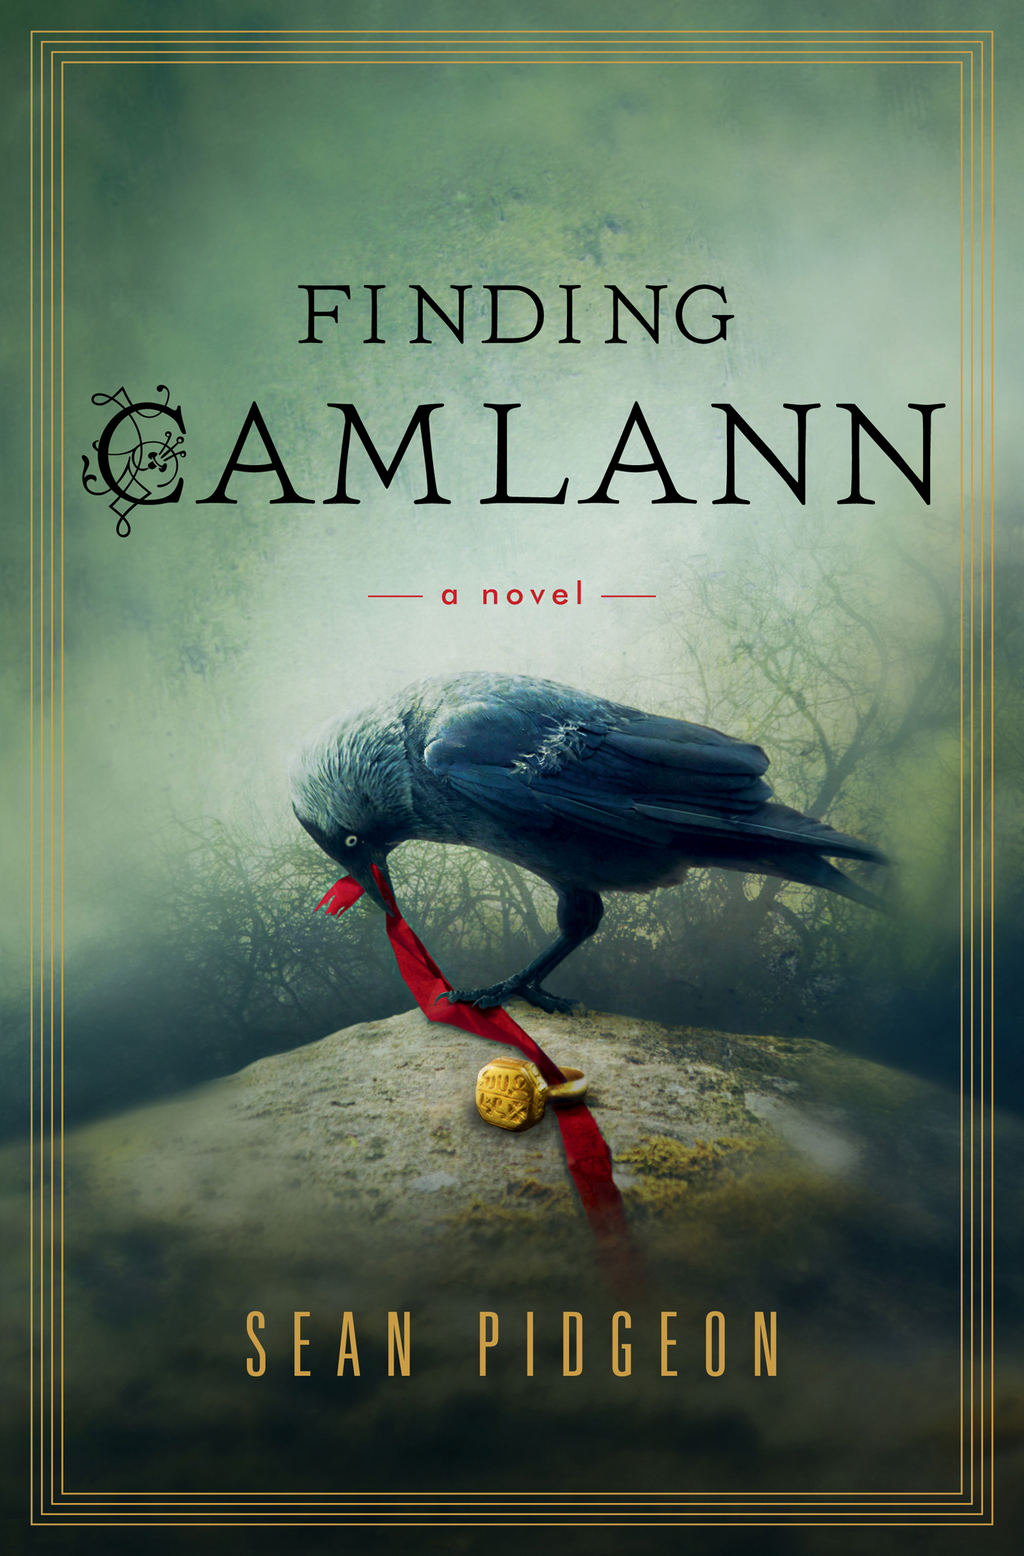 Finding Camlann: A Novel